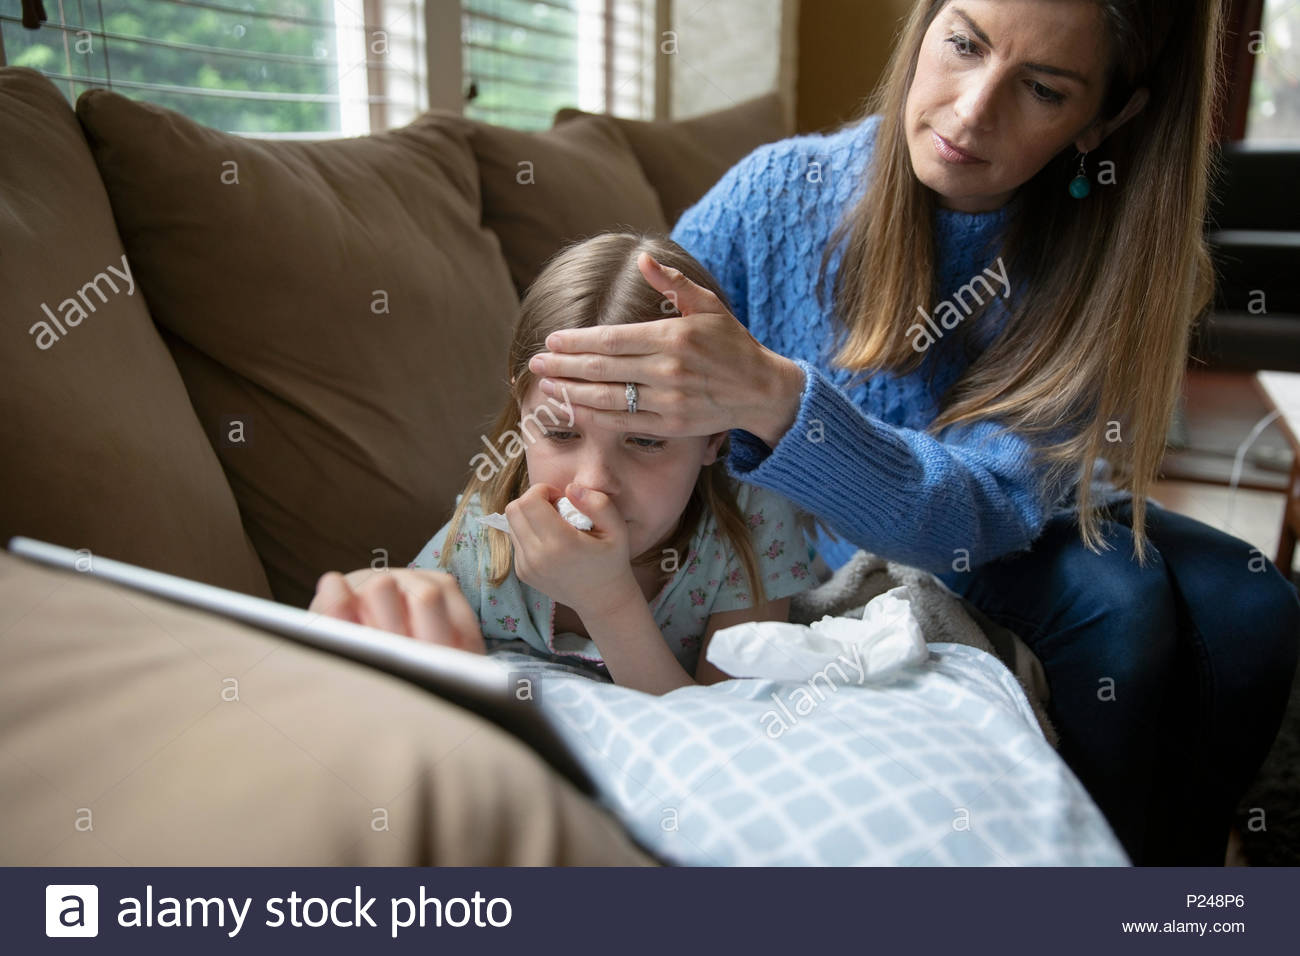 Mother checking forehead temperature of sick daughter laying on sofa - Stock Image